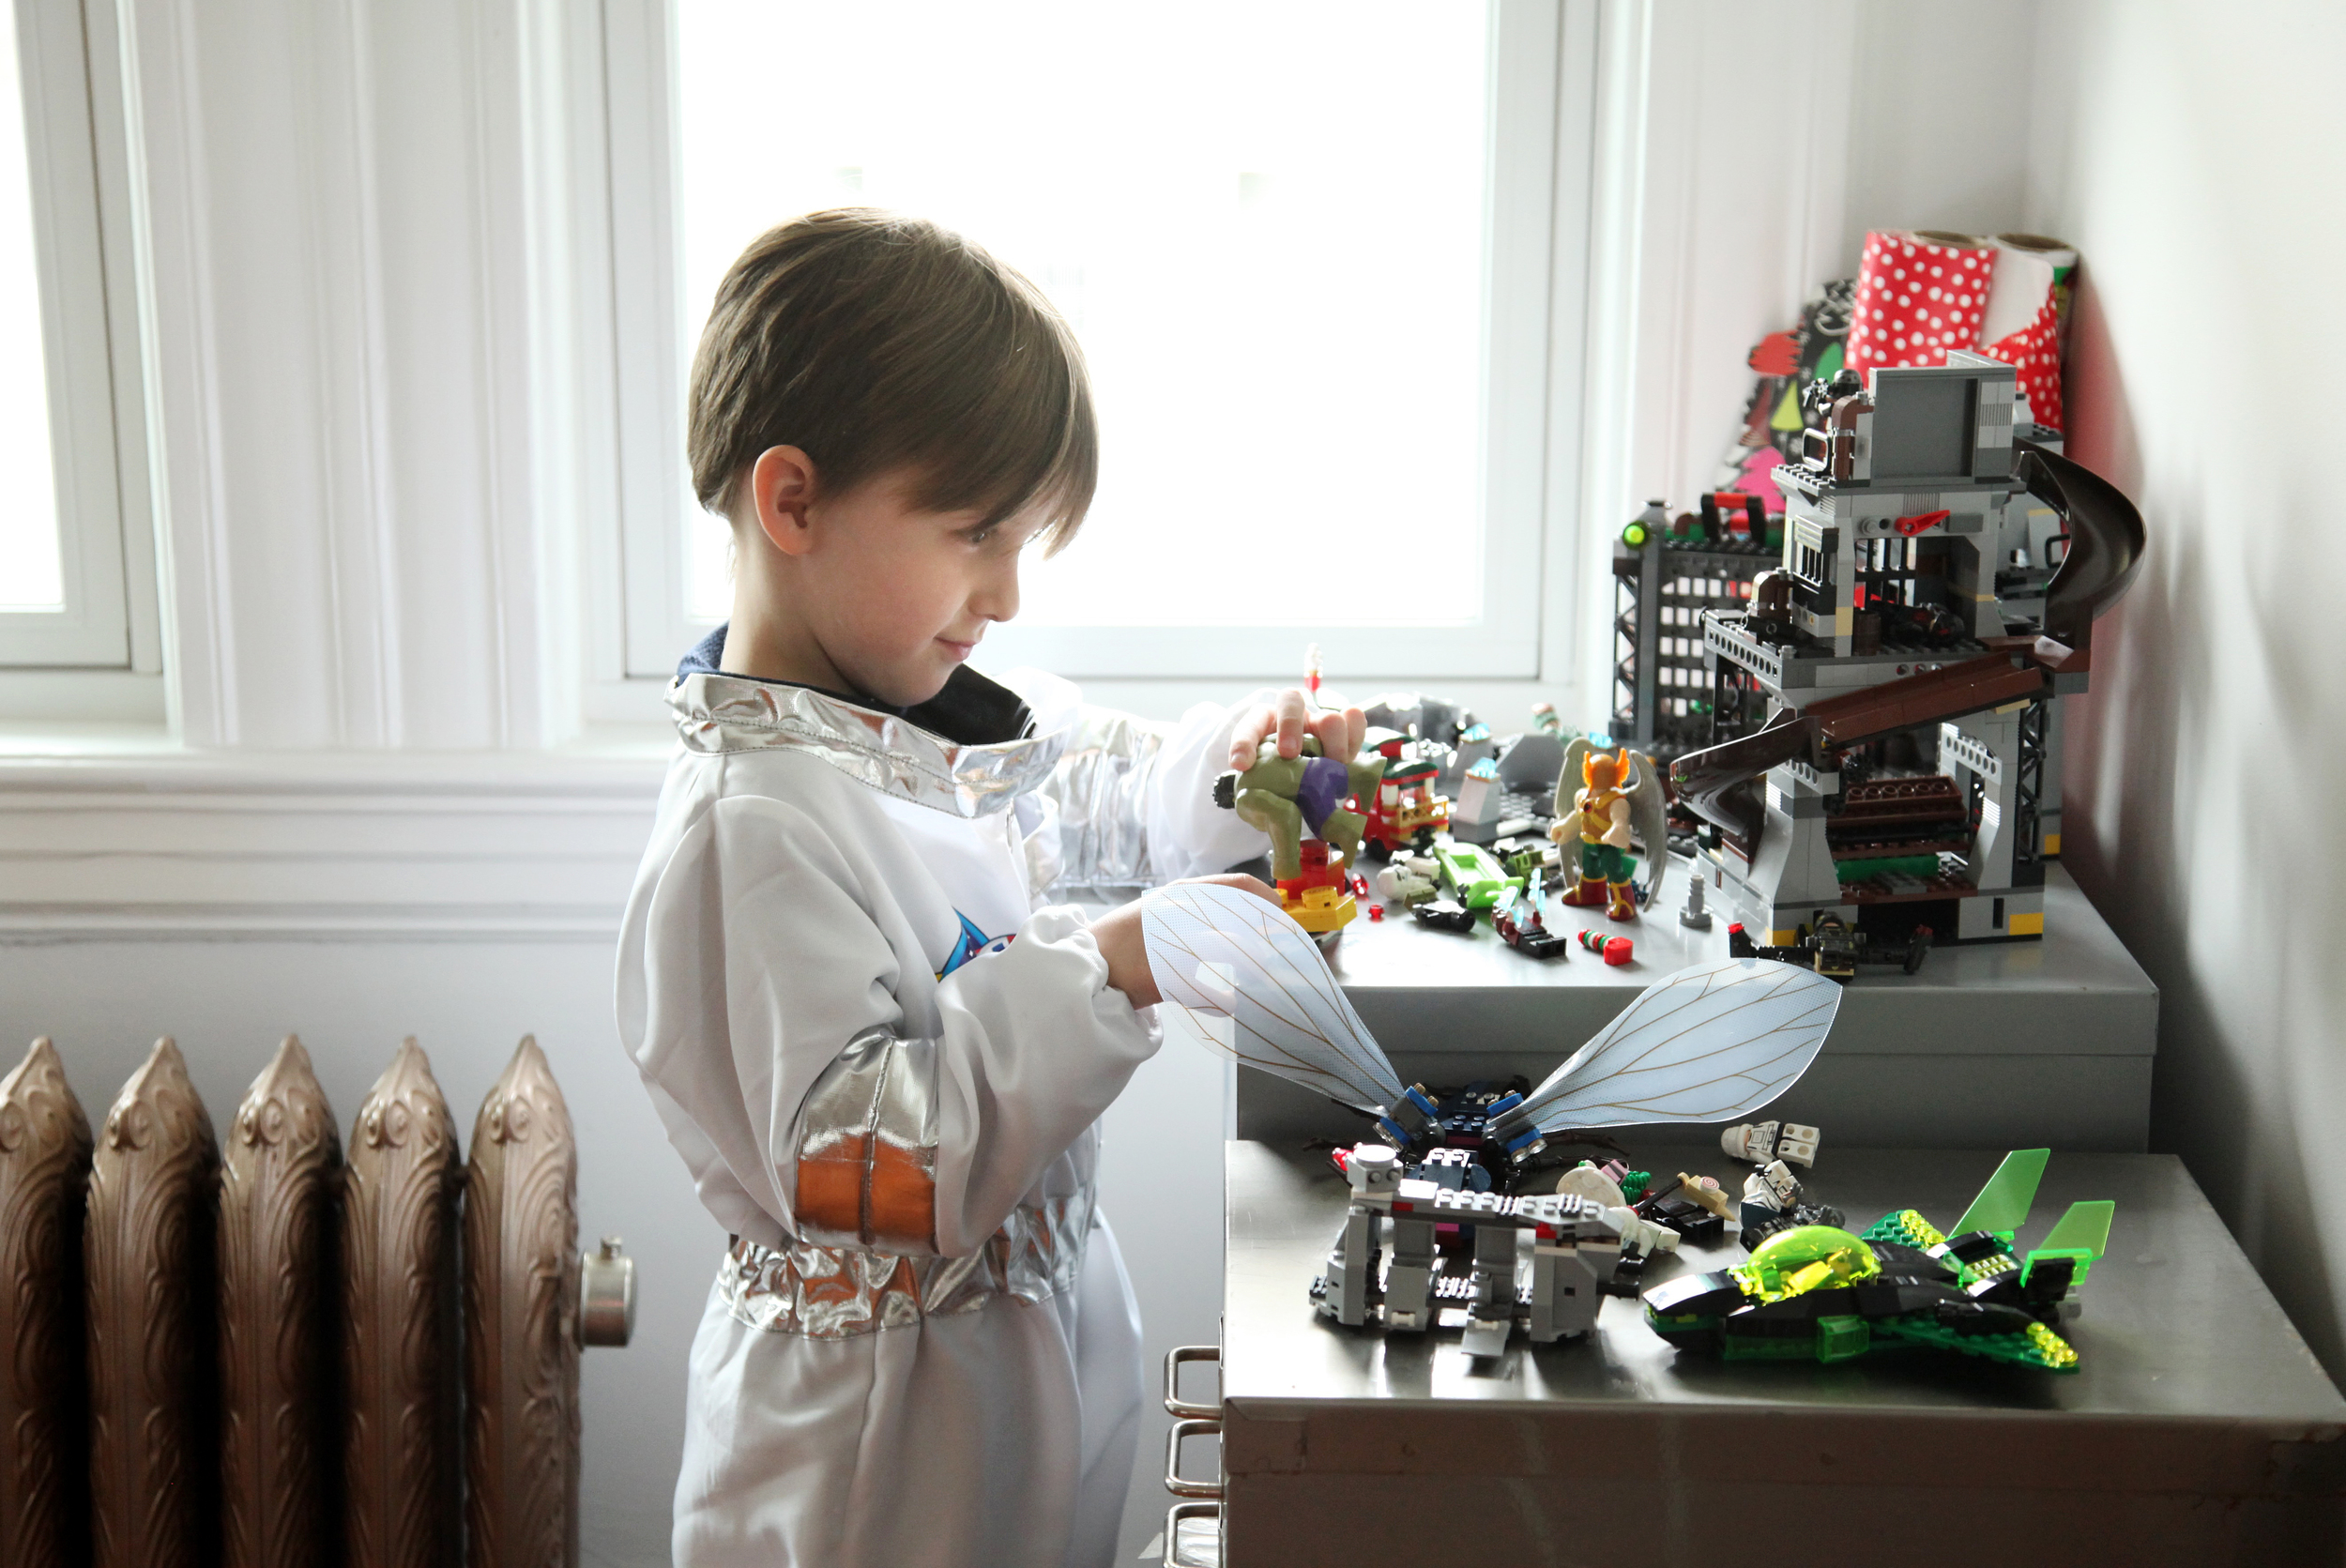 Desi the astronaut at his lego station in the studio.